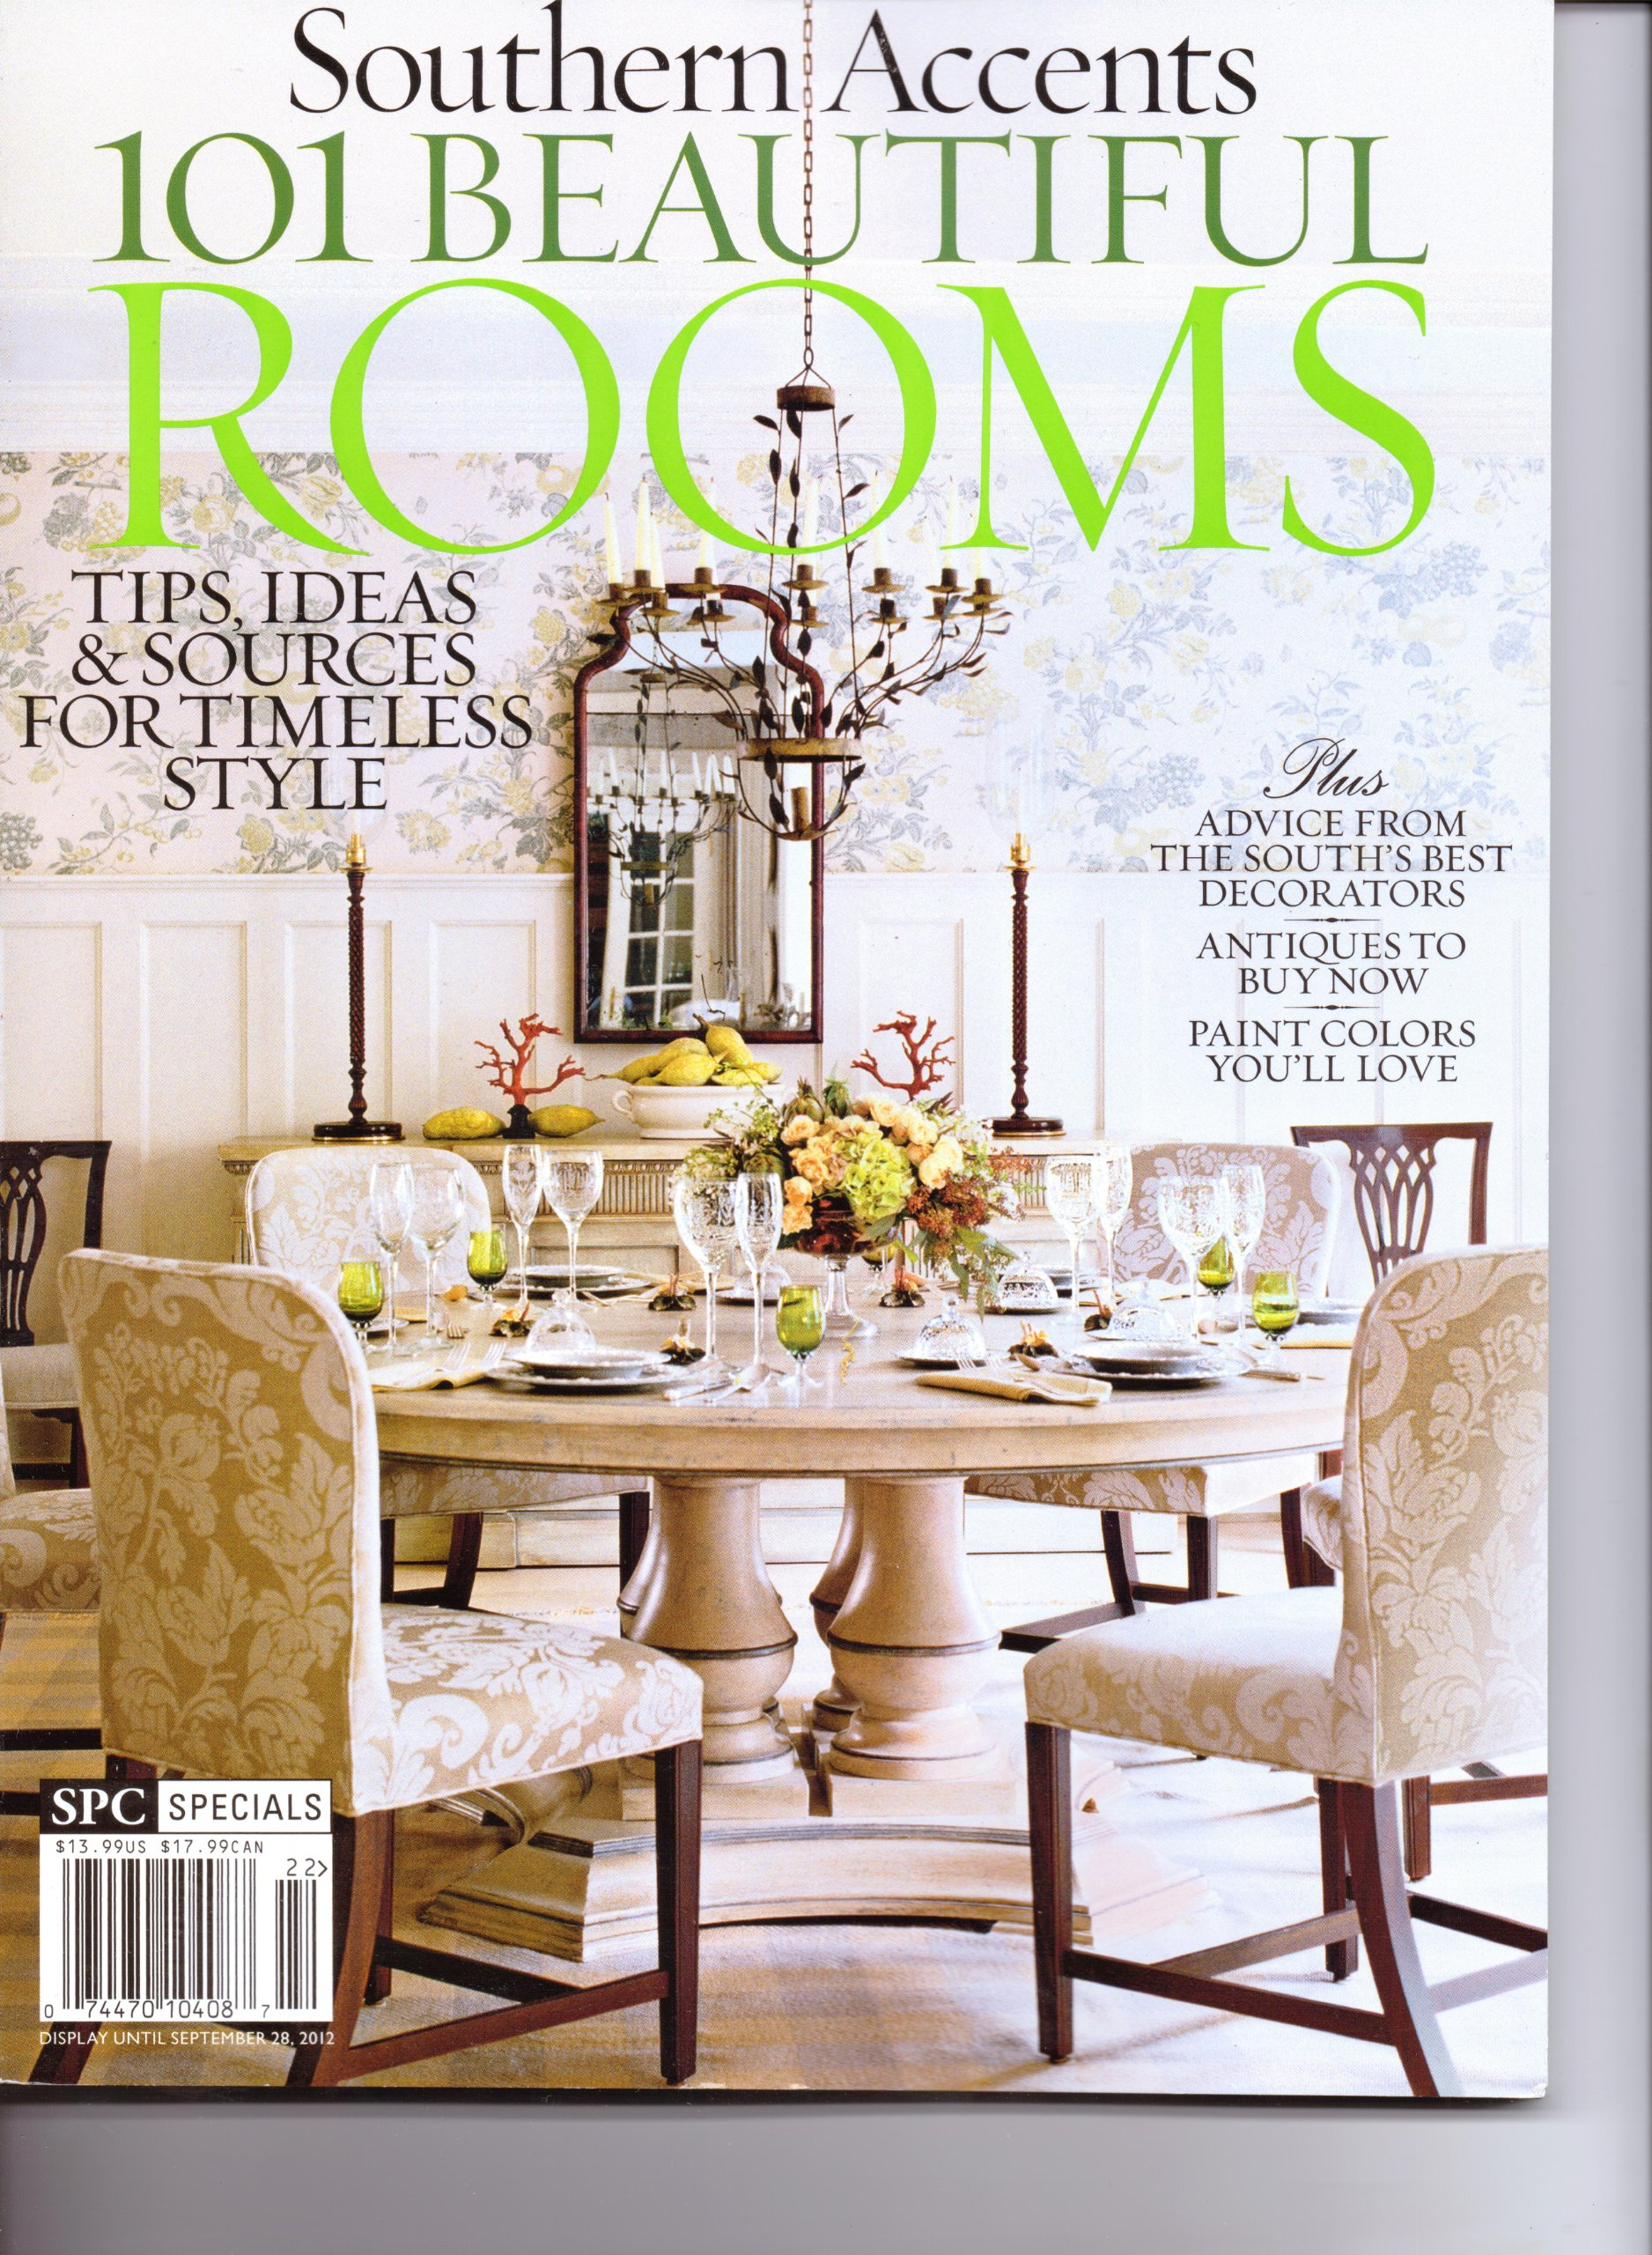 Southern Accents - 101 Beautiful ROOMS Magazine. Special Edition. 2012. ebook